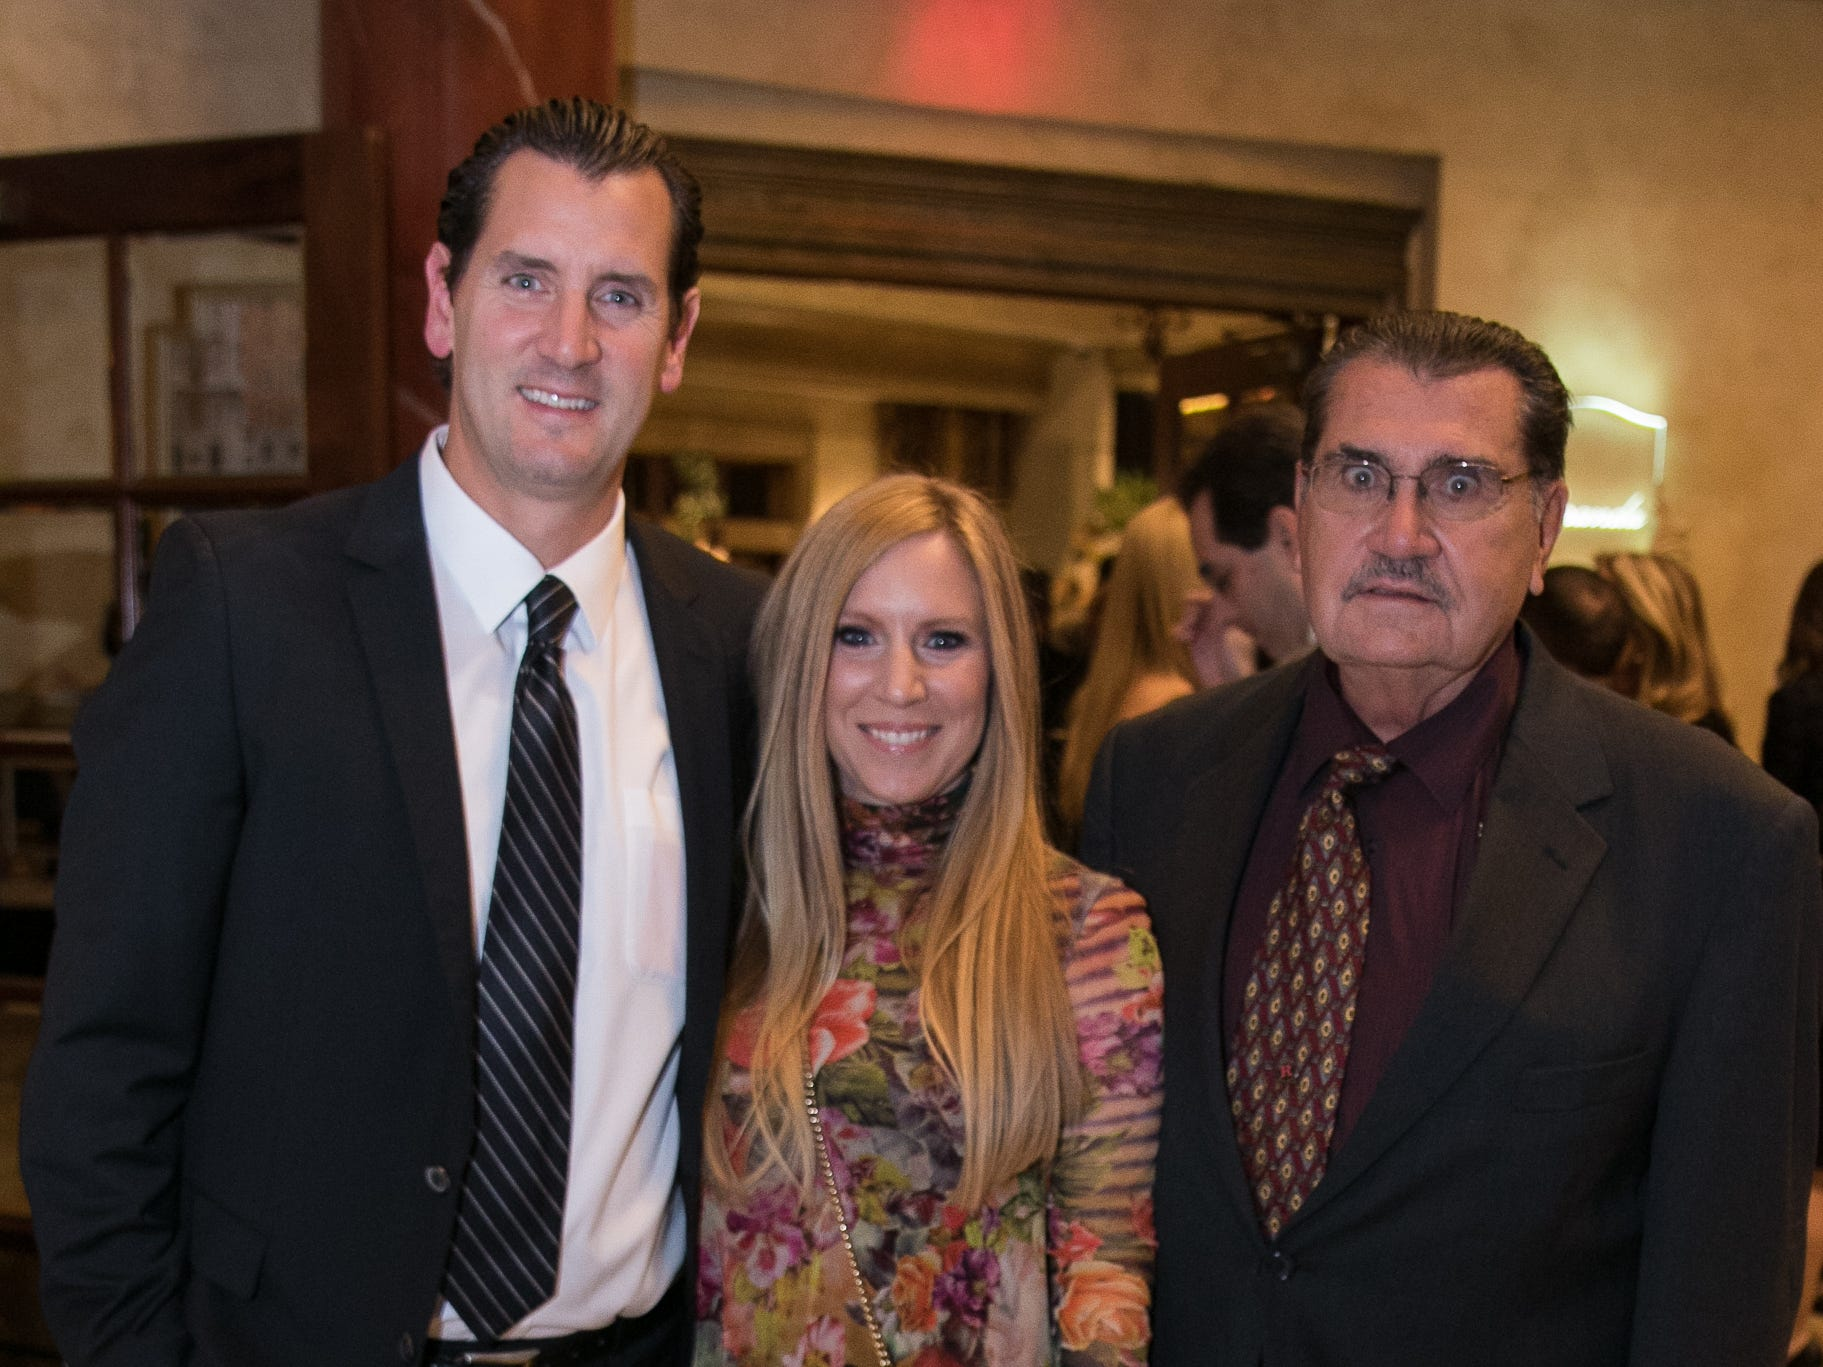 Greg, Sheryl, and Frank Mantonti. Don Bosco Prep held it's 17th Annual President's Gala at The Venitian in Garfield, NJ. 10/25/2018